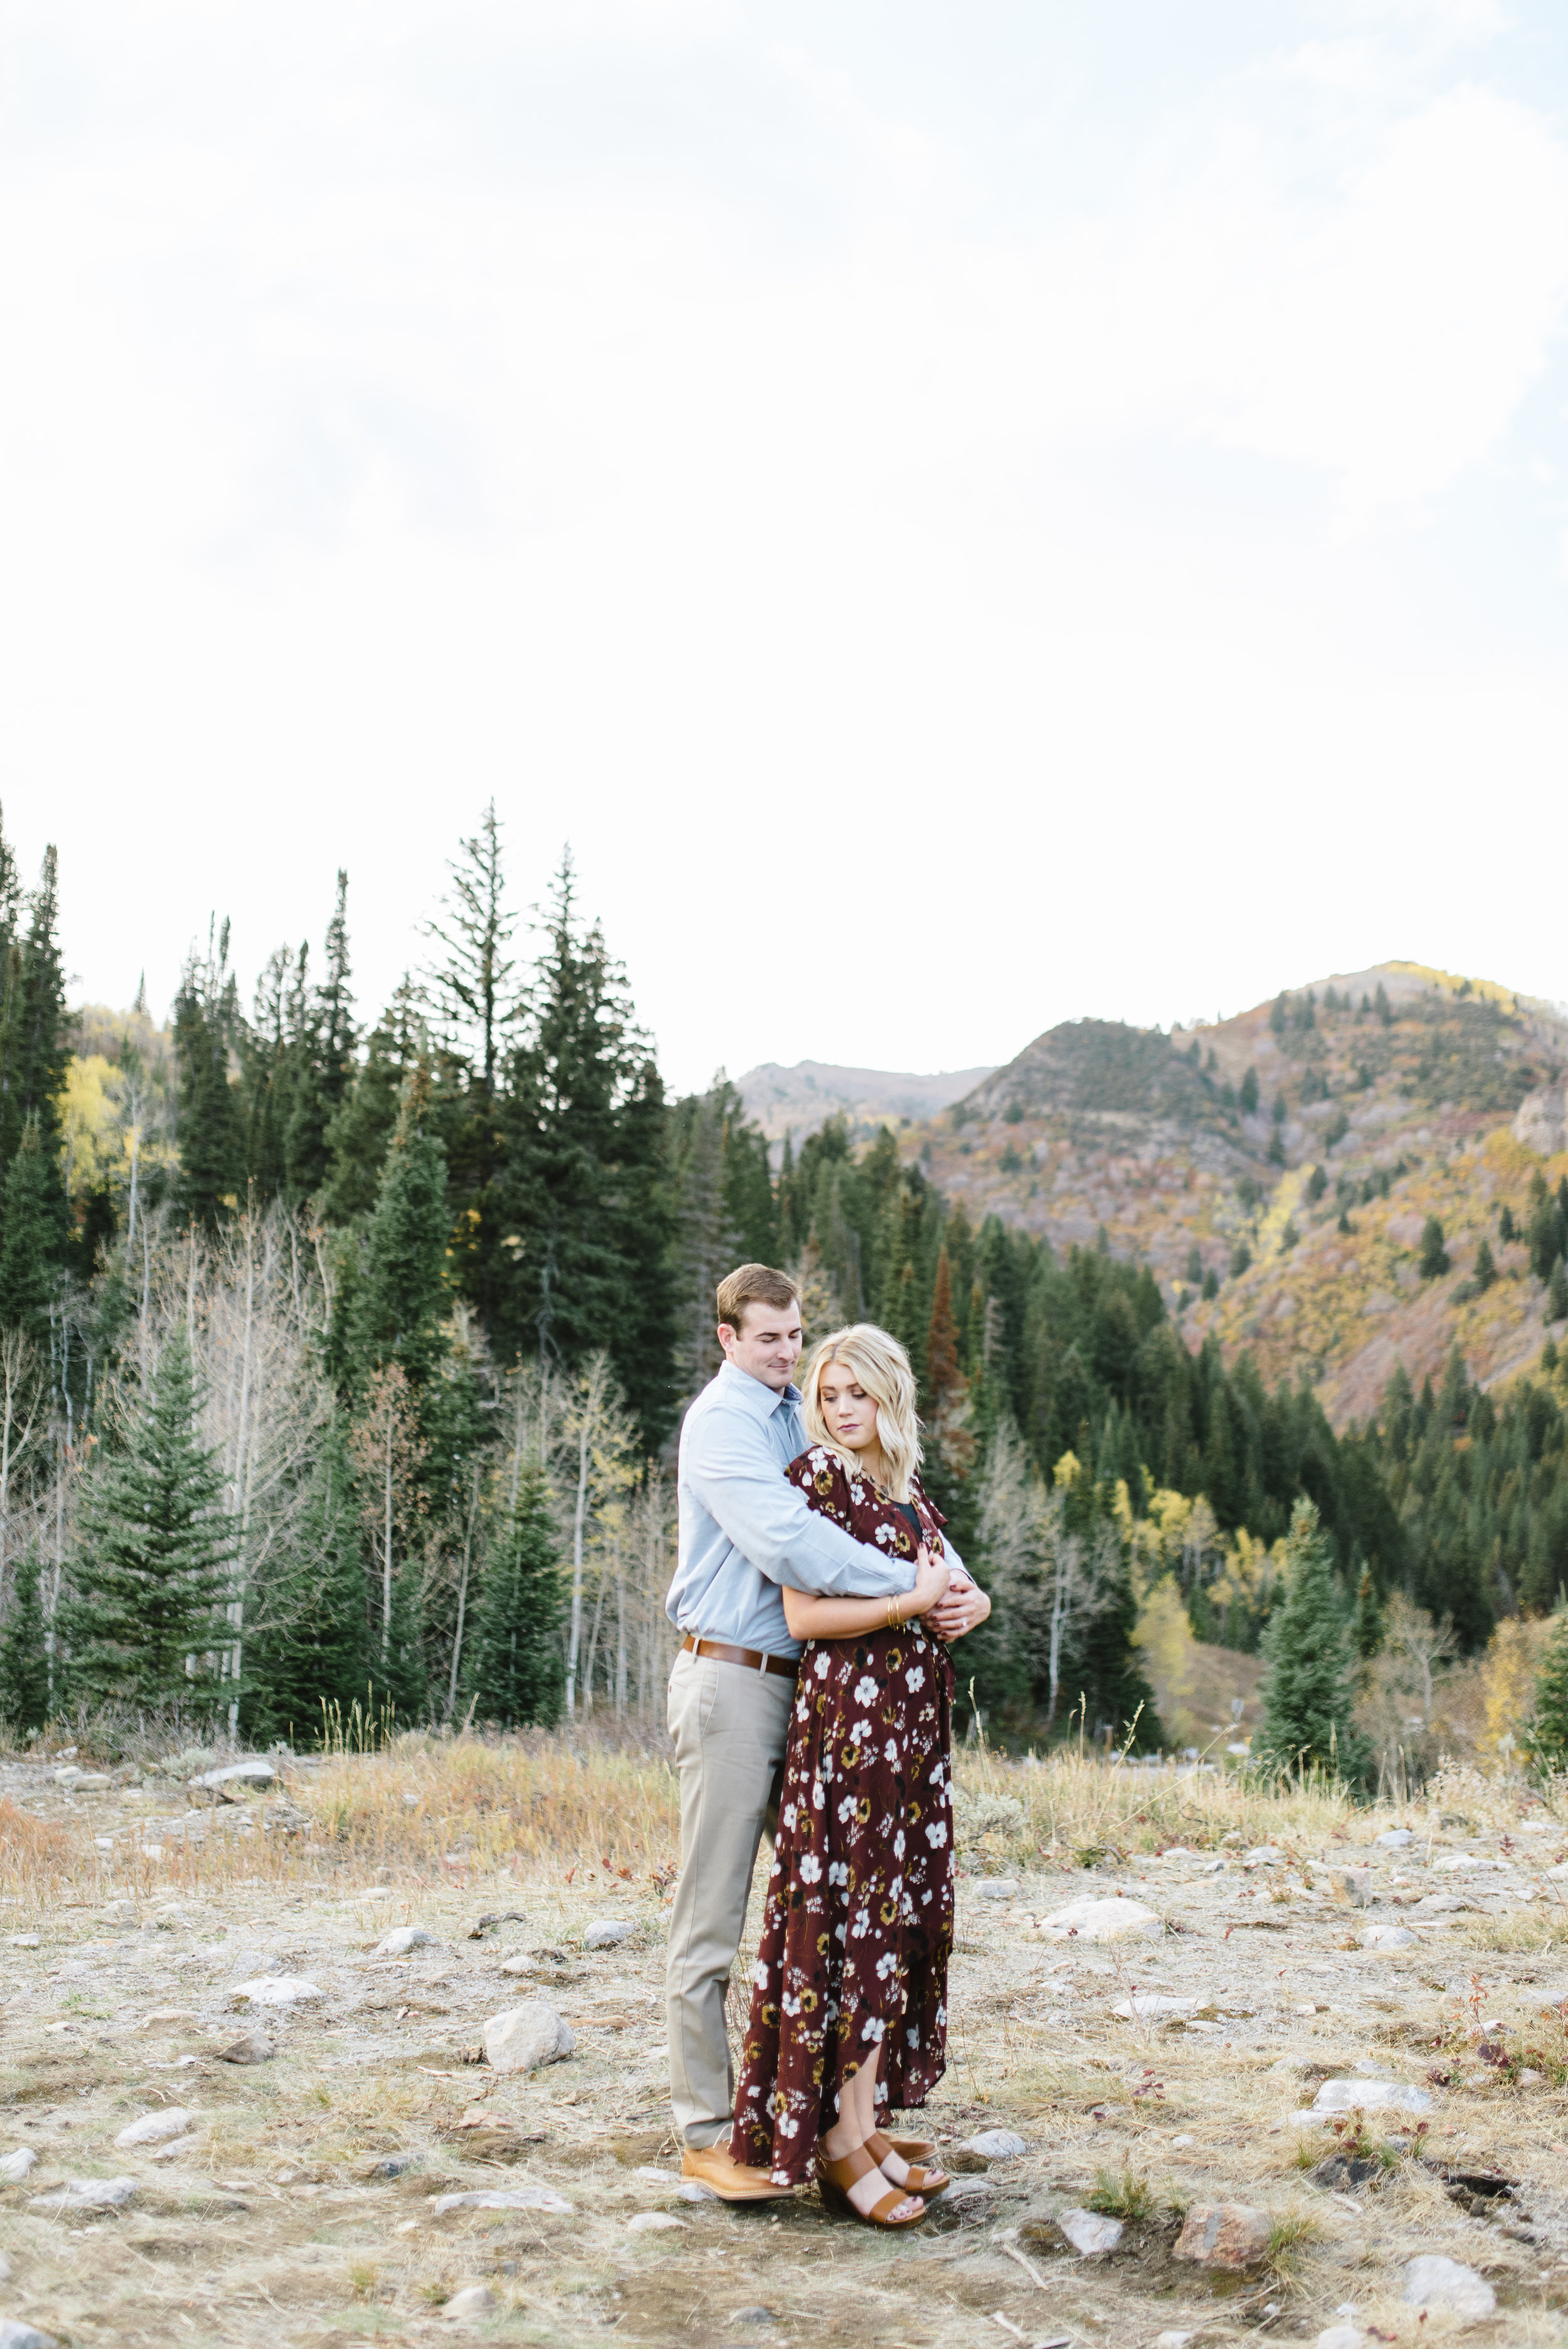 Taylor+Joe Engagements-50.jpg